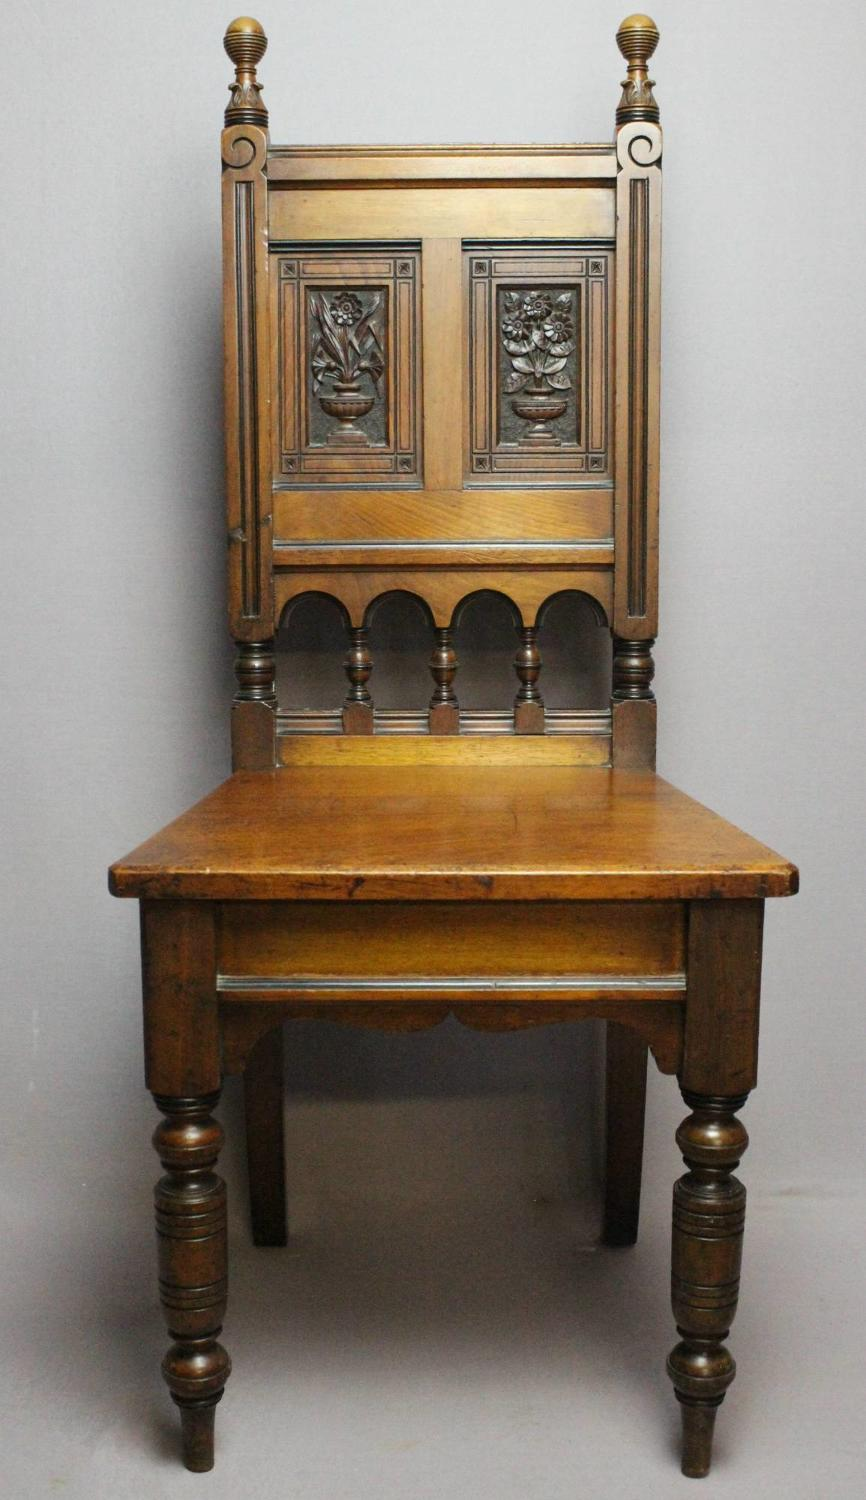 Maple & Co Hall Chair attributed to H.W. Batley